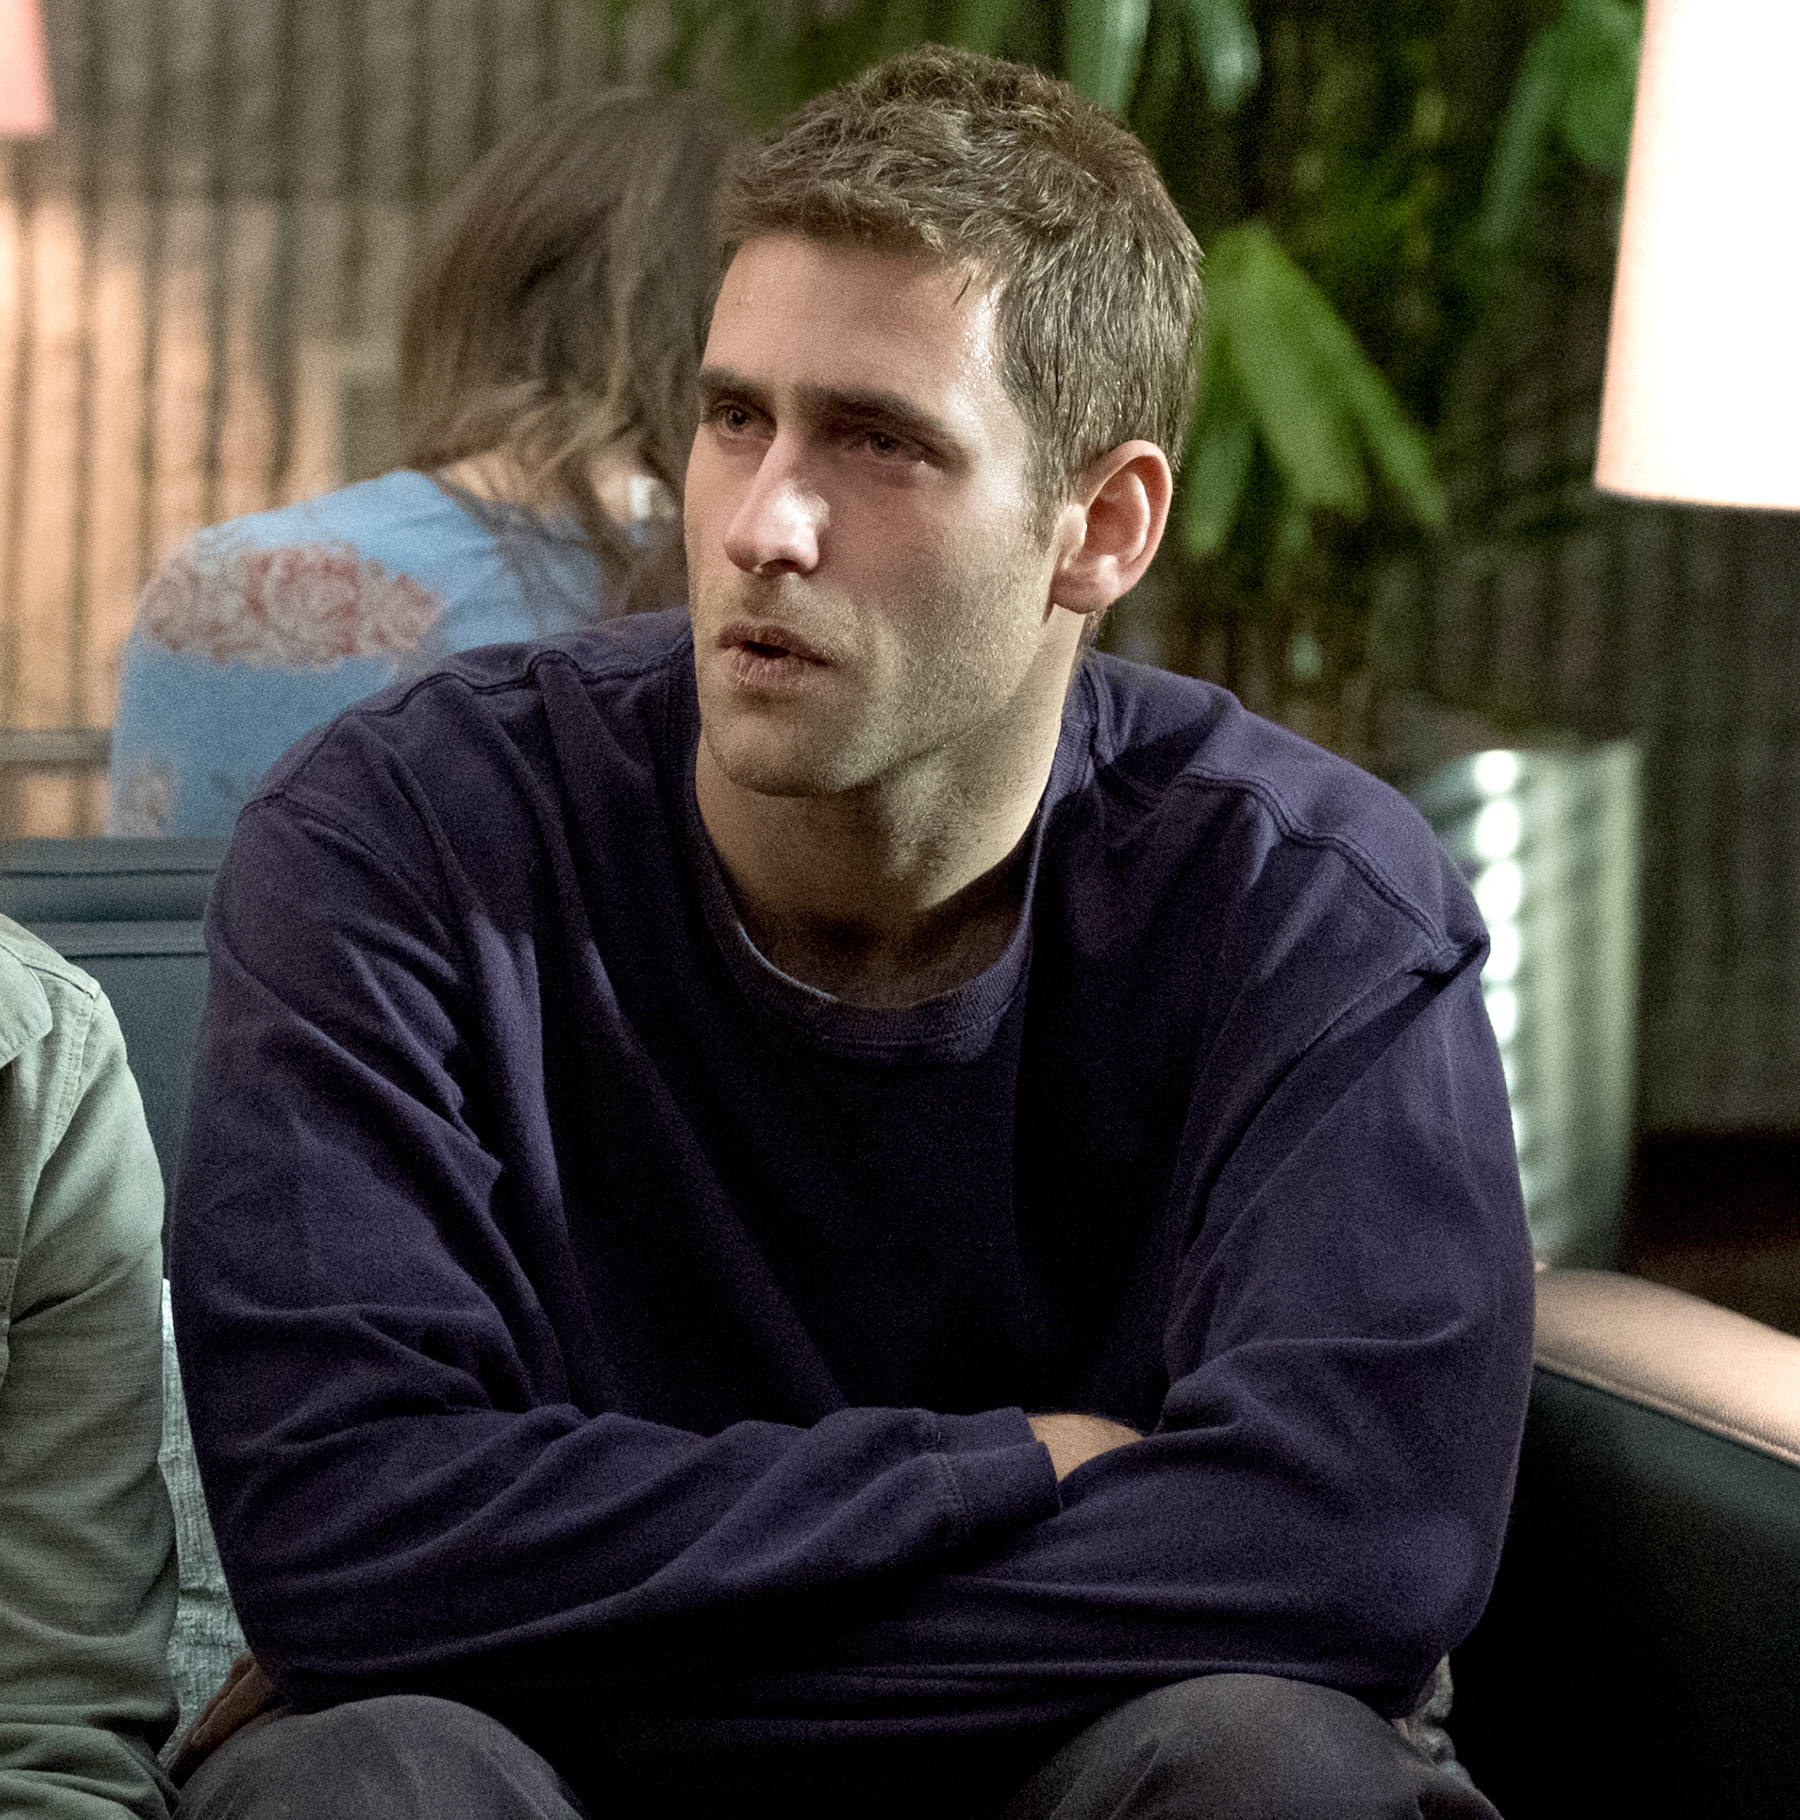 Oliver-Jackson-Cohen-Haunting-of-Hill-House - Let's be honest: the cast of The Haunting of Hill House could have filled this entire gallery. Jackson-Cohen is not new to the industry, but when he transformed into Luke Crain, he turned into something different: an addict with a huge heart.